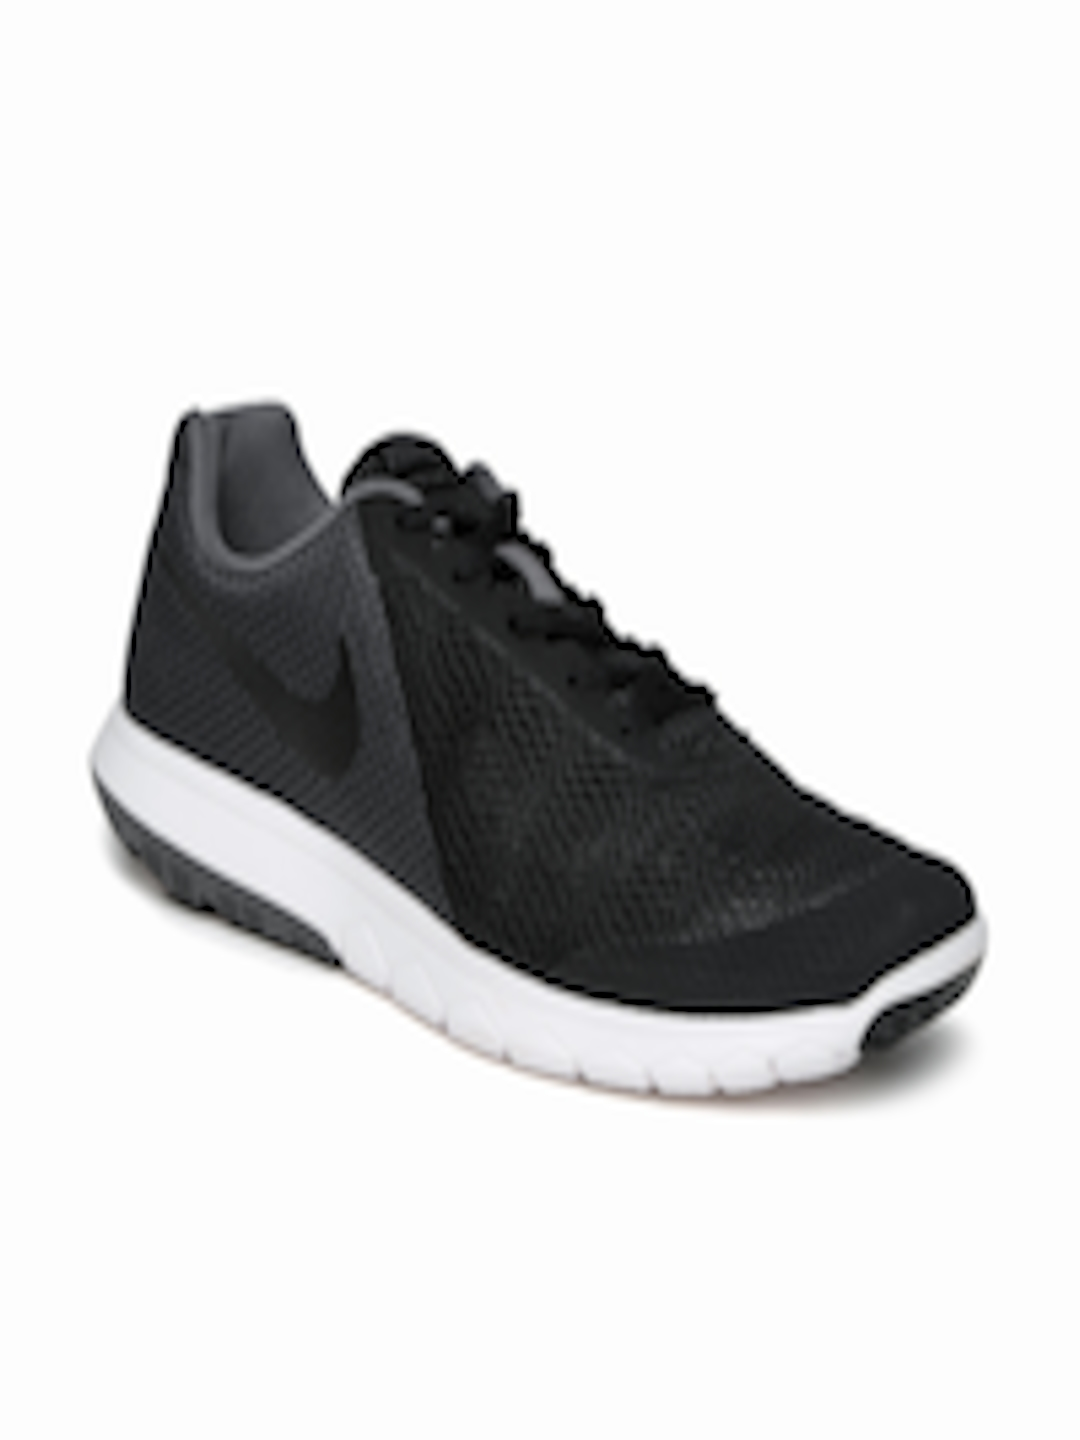 04b9d4adca59d Buy Men s Nike Flex Experience RN 6 Running Shoe - Sports Shoes for Men  1719439